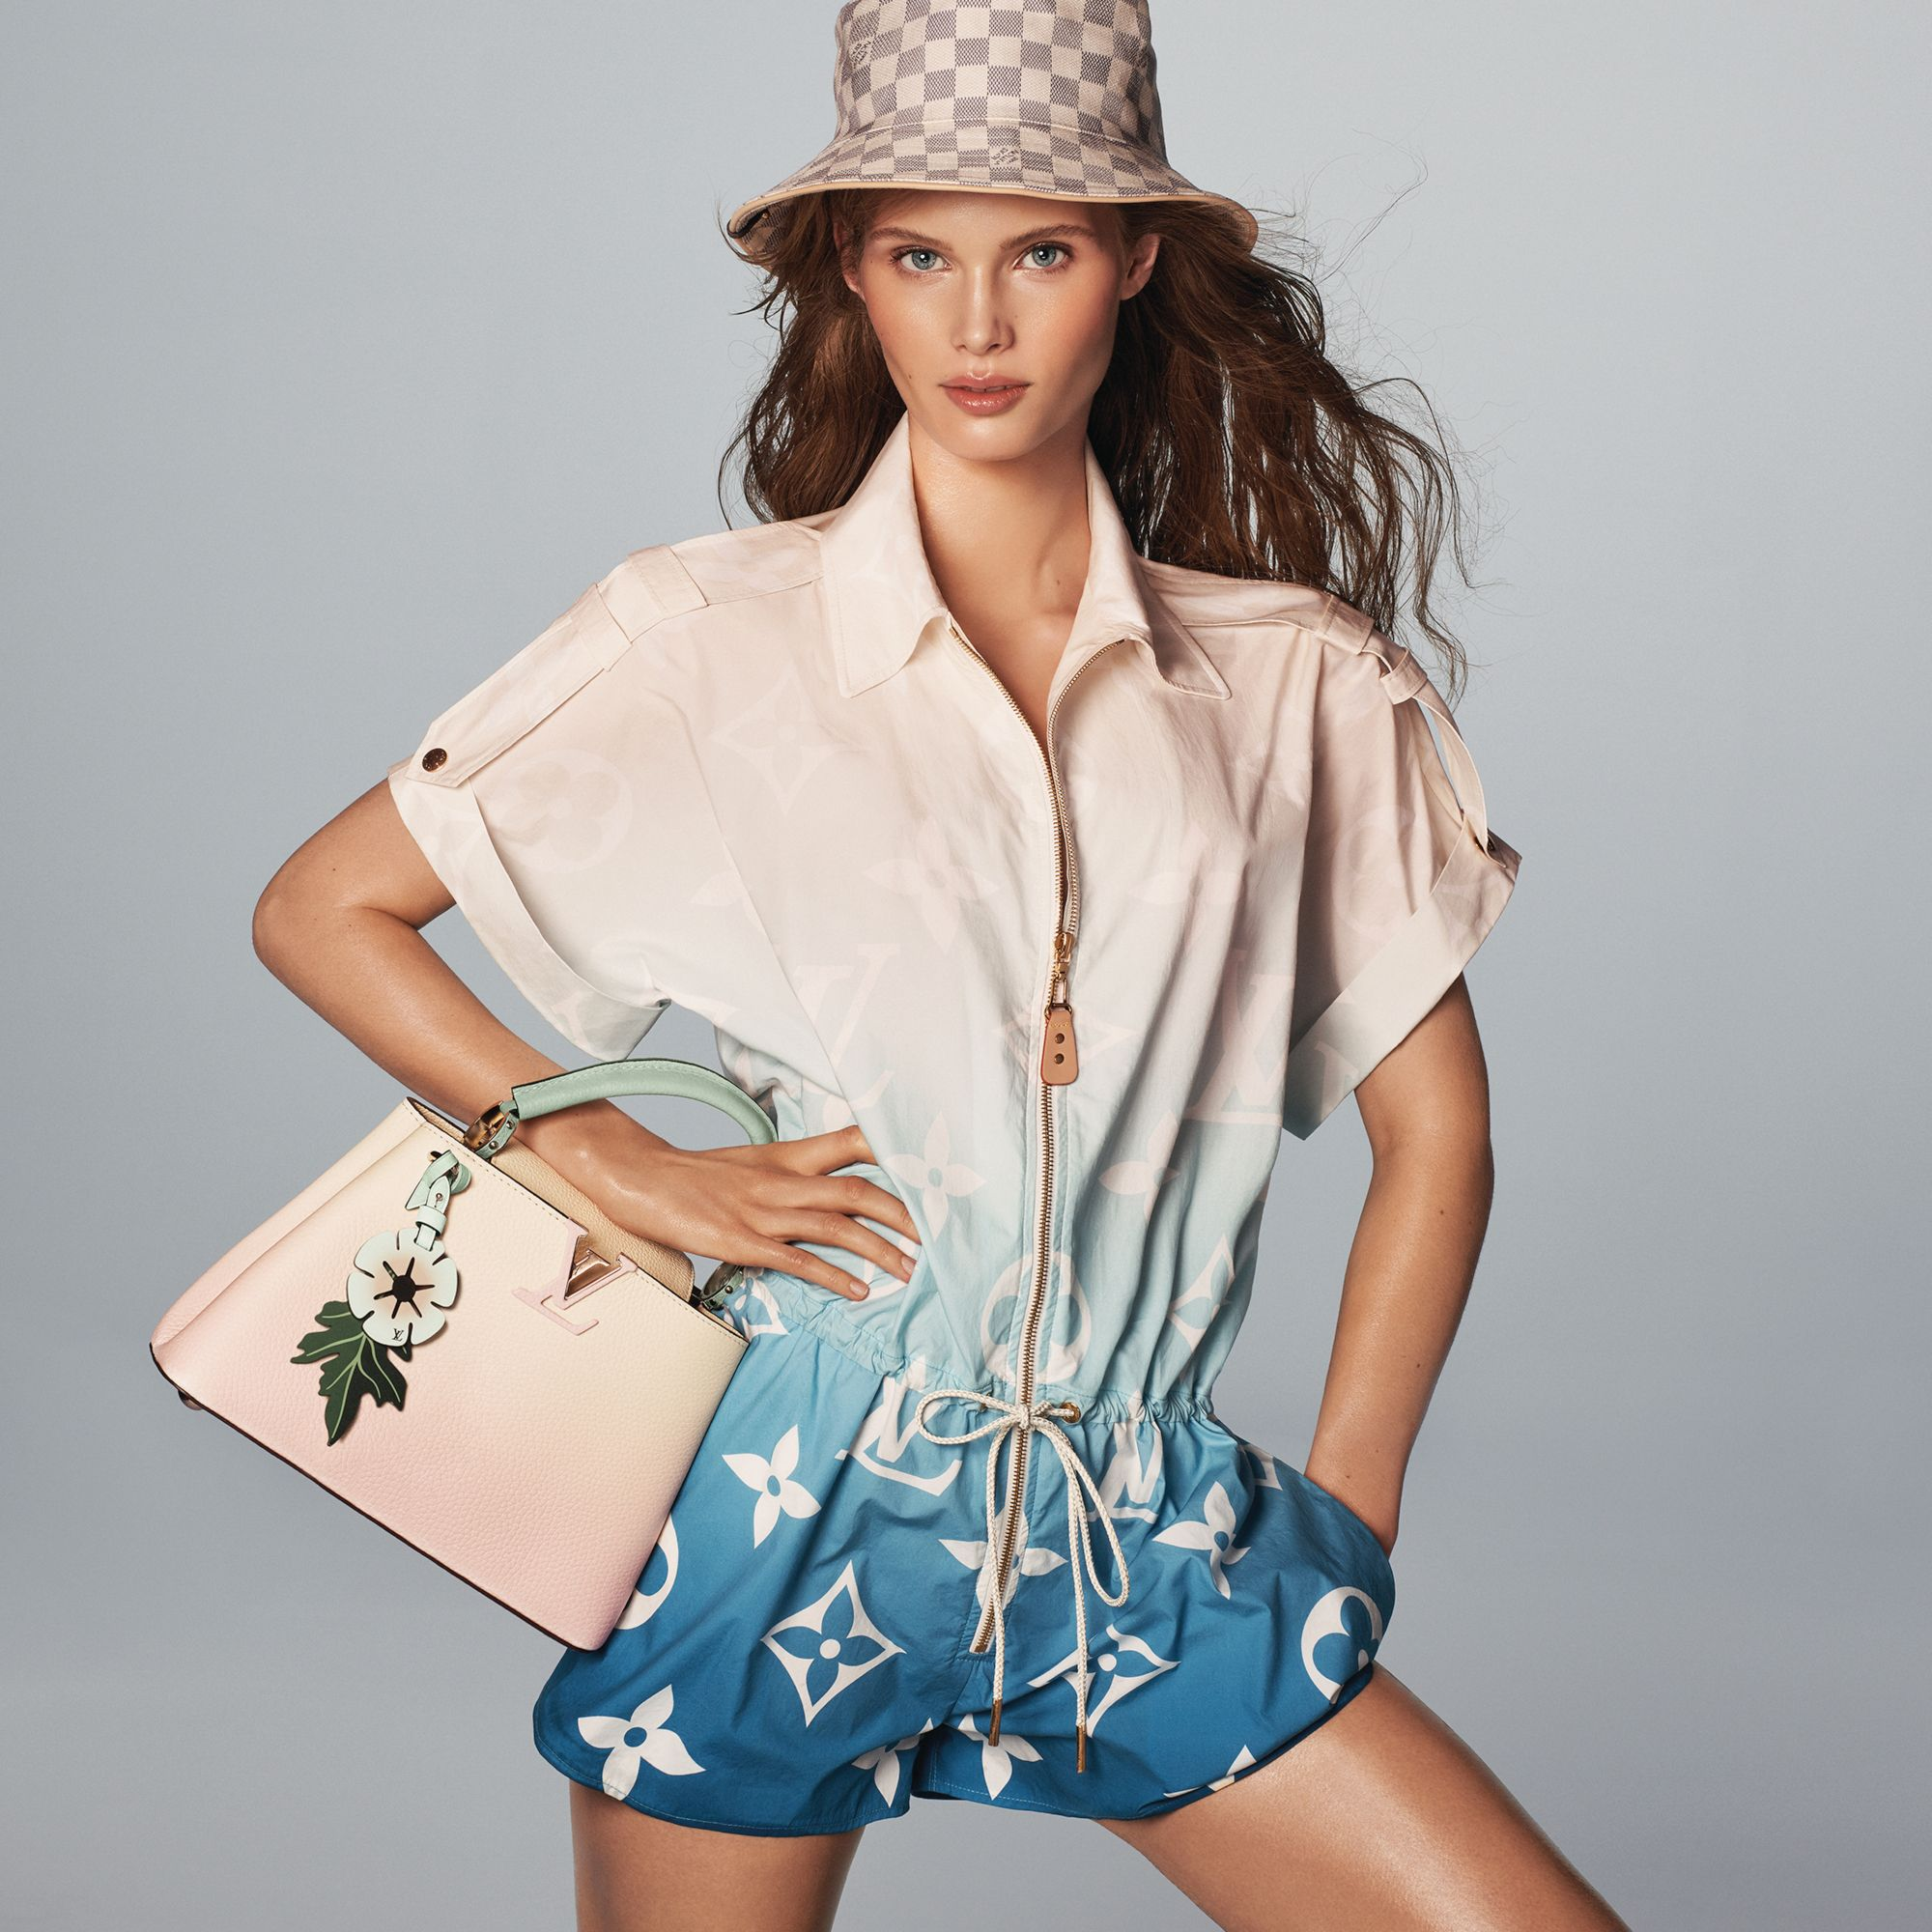 Sun, Sand, Style: The ultimate beach checklist should include at least one of these summery staples. Louis Vuitton Capucines bag Loewe and basket bag